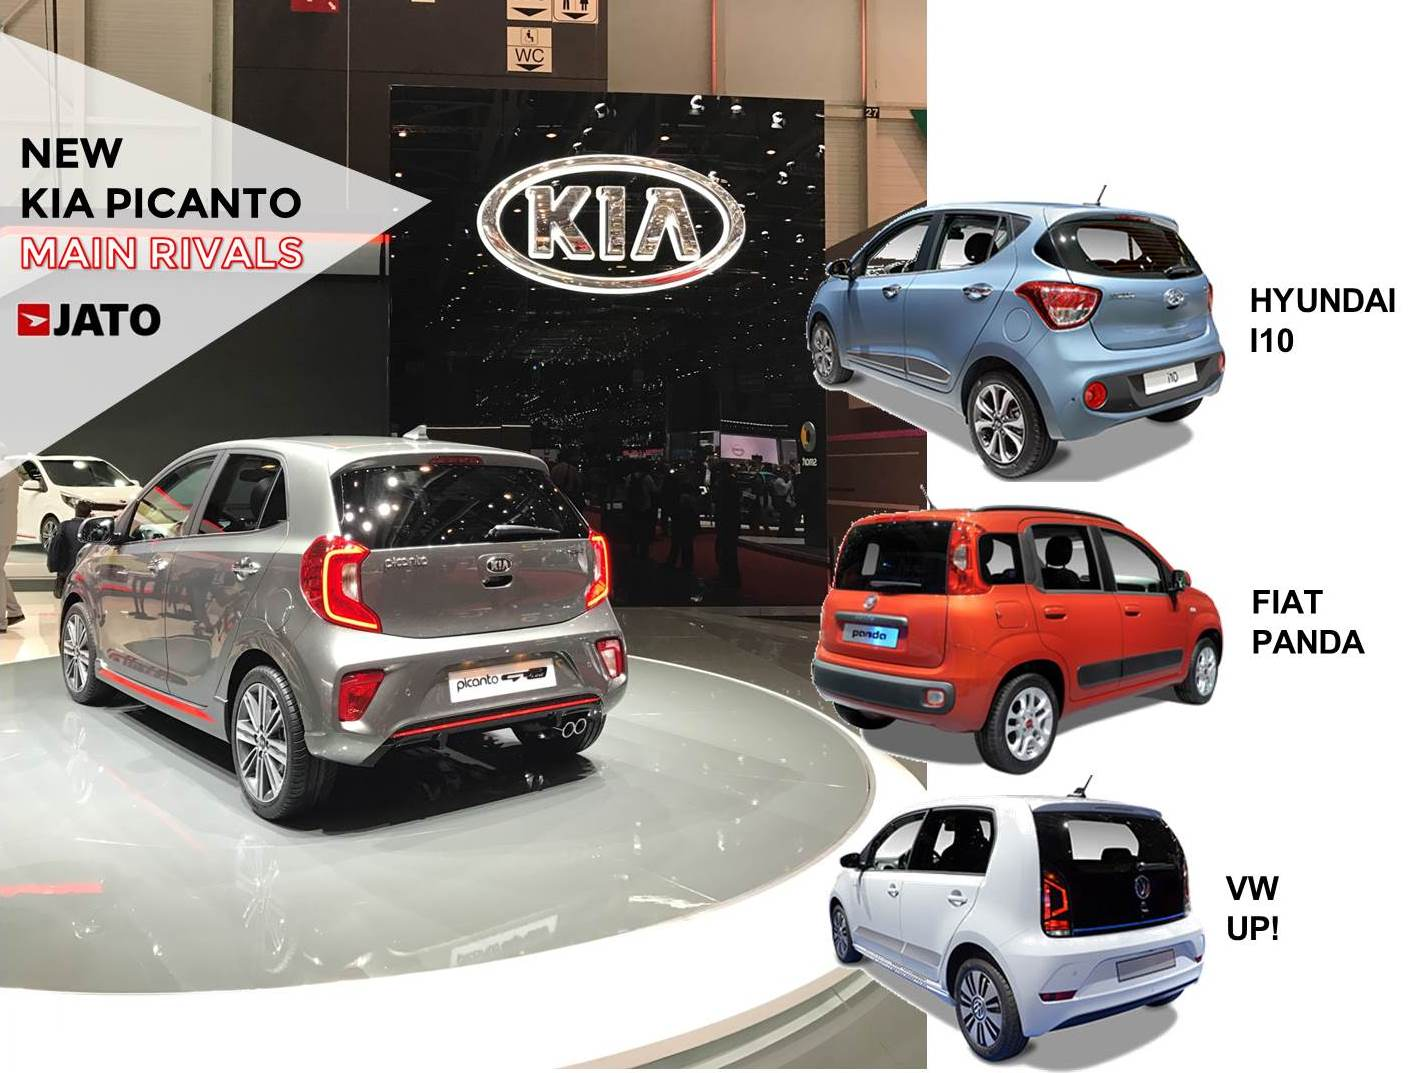 With total A-Segment registrations stable during the next 3 years, the new Kia will try to take sales away from its rivals by featuring a more serious design and bigger engines.